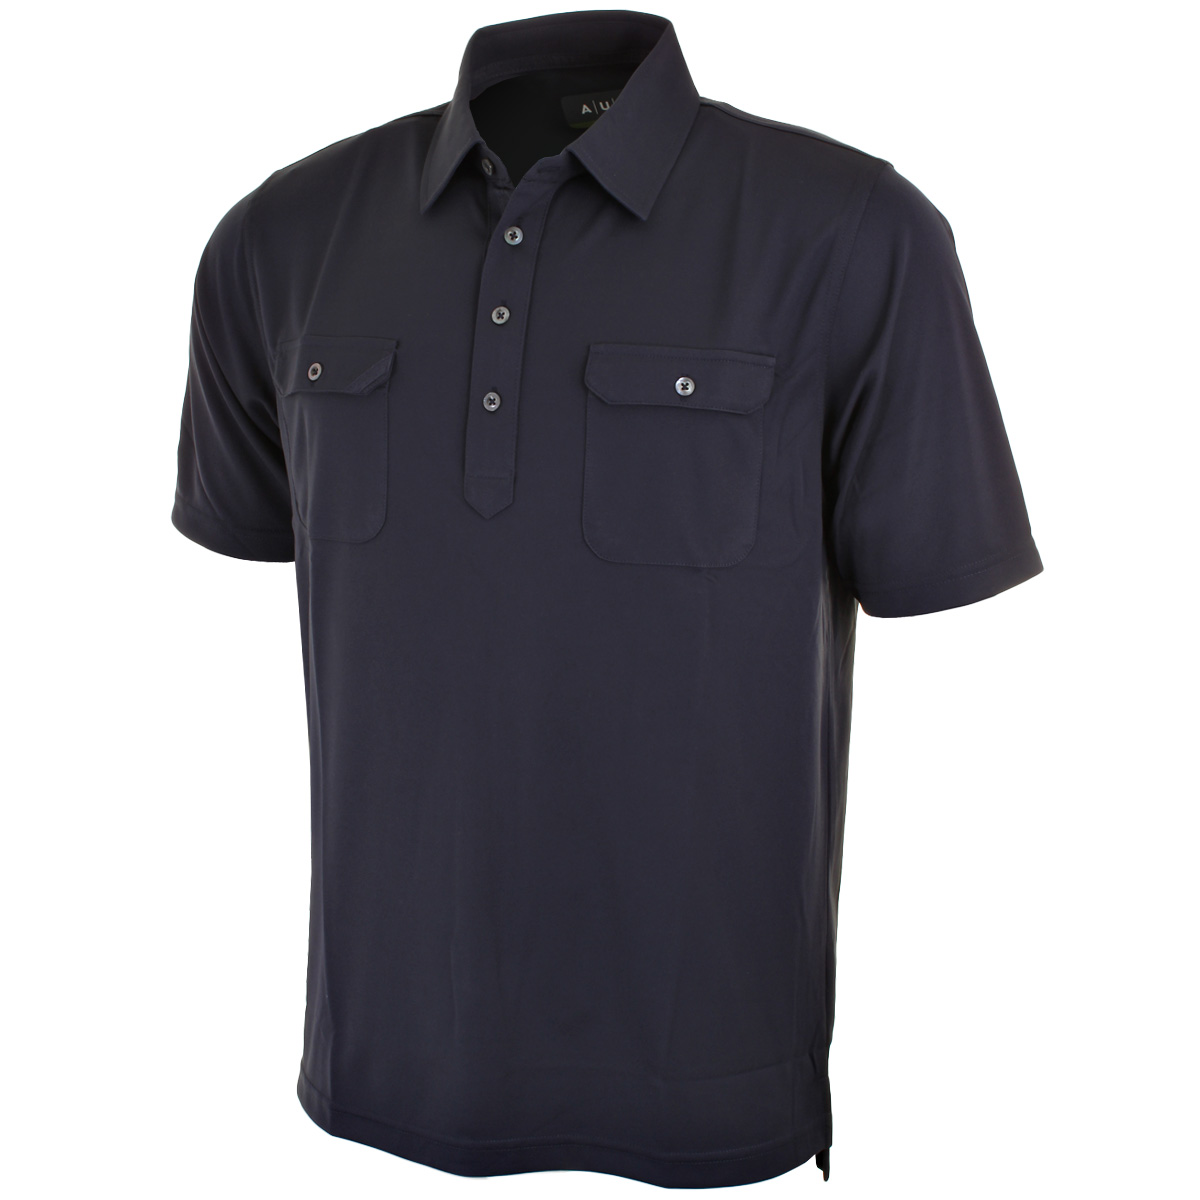 Aur golf mens s cafe double chest pocket golf polo shirt for Men s polo shirts with chest pocket